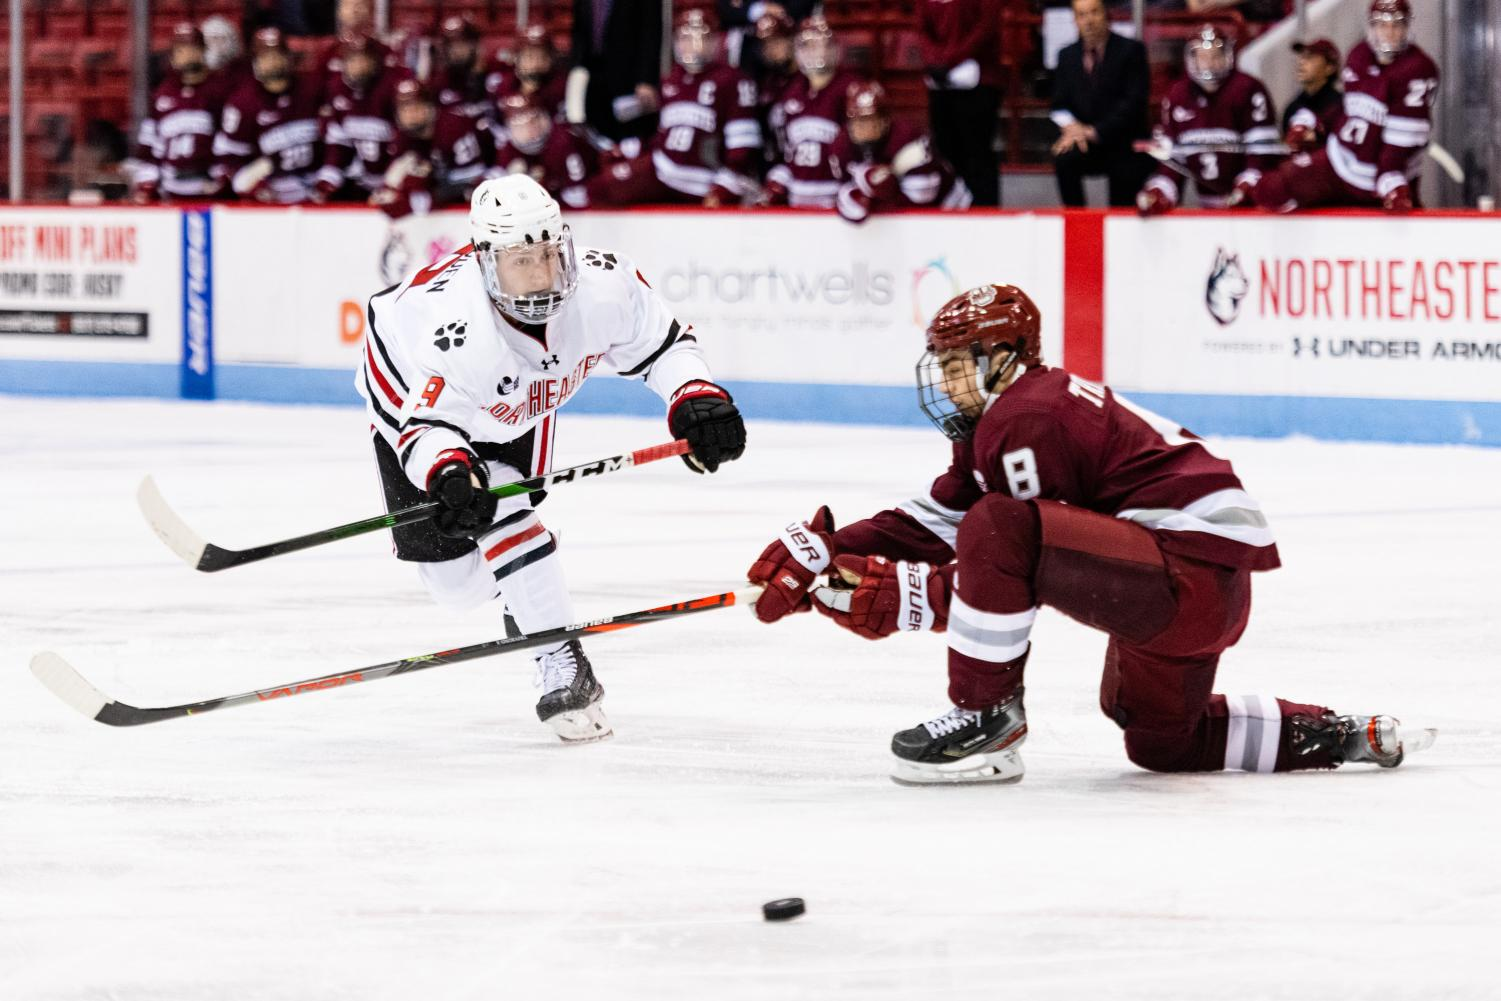 Sophomore center Tyler Madden shoots the puck past a defender in a game earlier this season versus UMass.